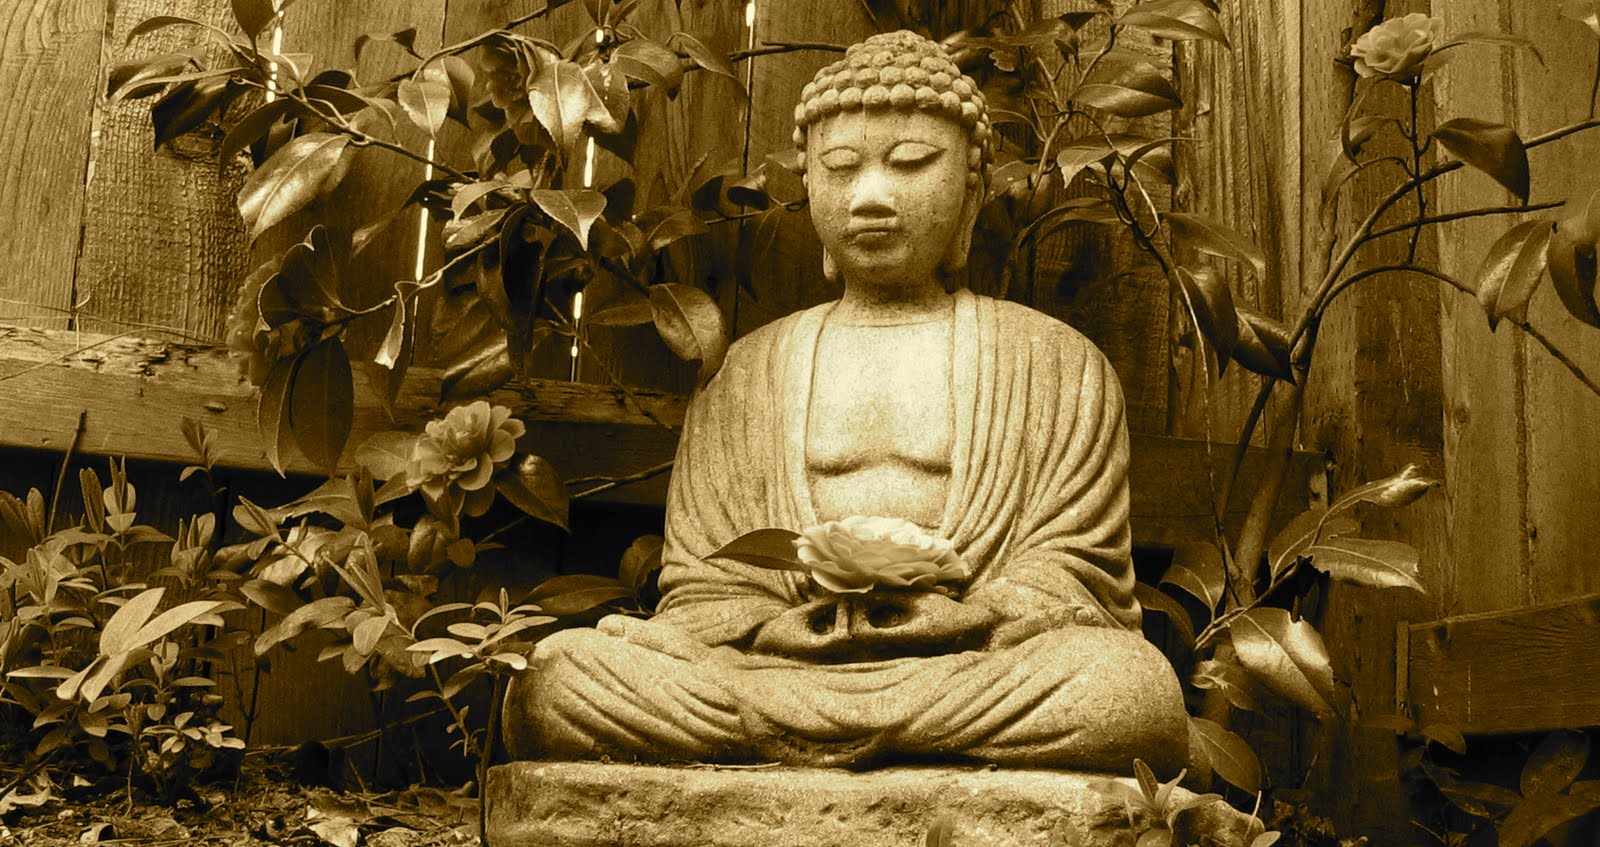 Old Enough To Know Better If You Meet The Buddha On The